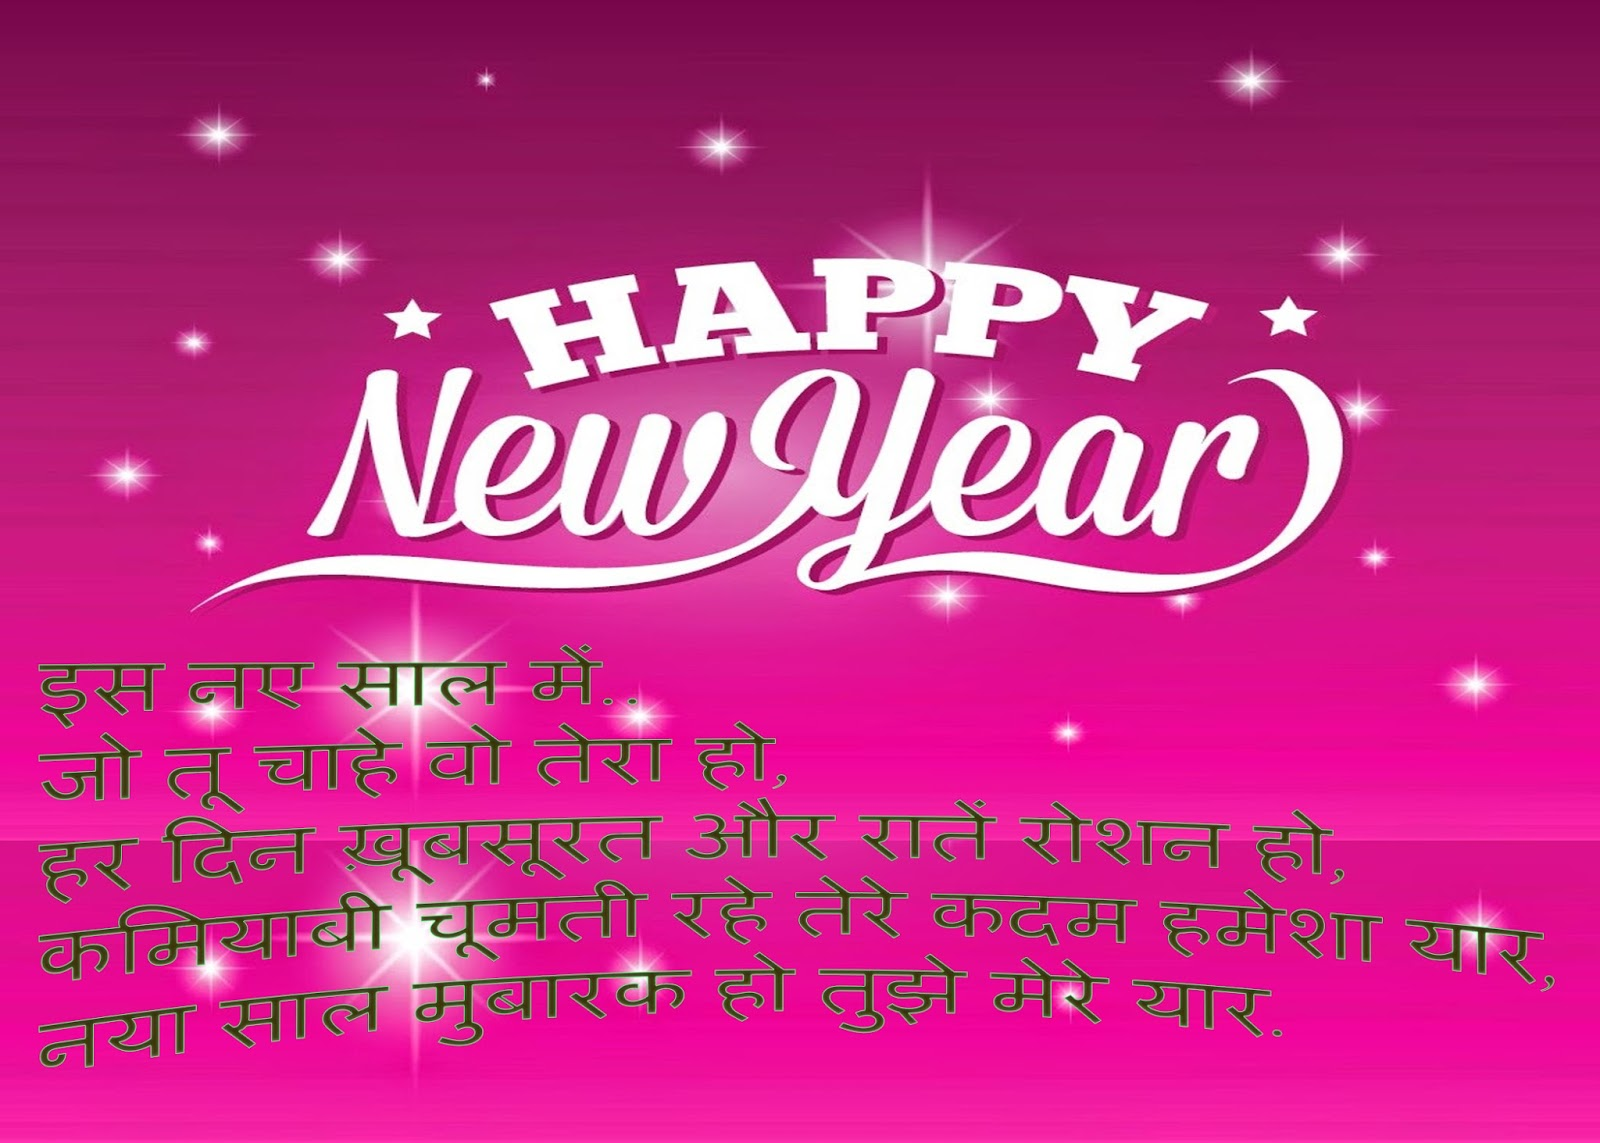 Happy new year sms messages hindi whatsapp messages happy new year smshappy new year wishes hindihappy new year picture messages m4hsunfo